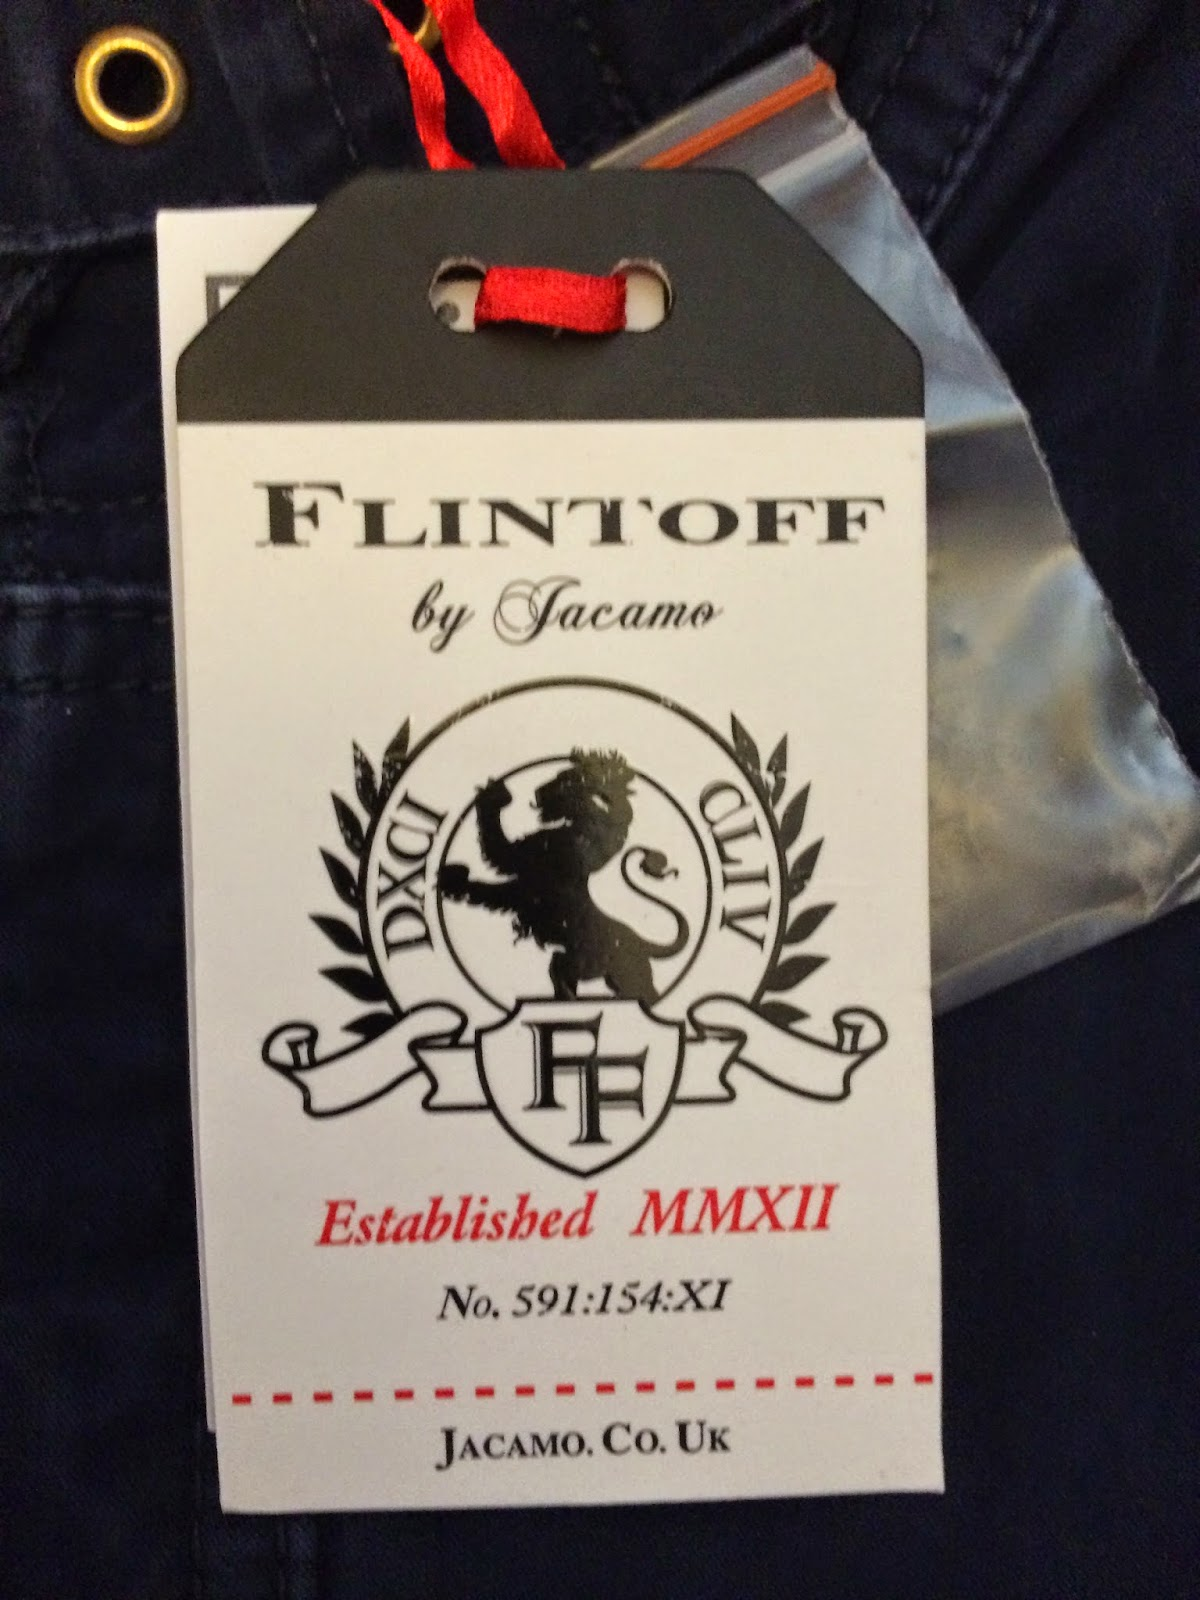 label from Flintoff collection at jacamo